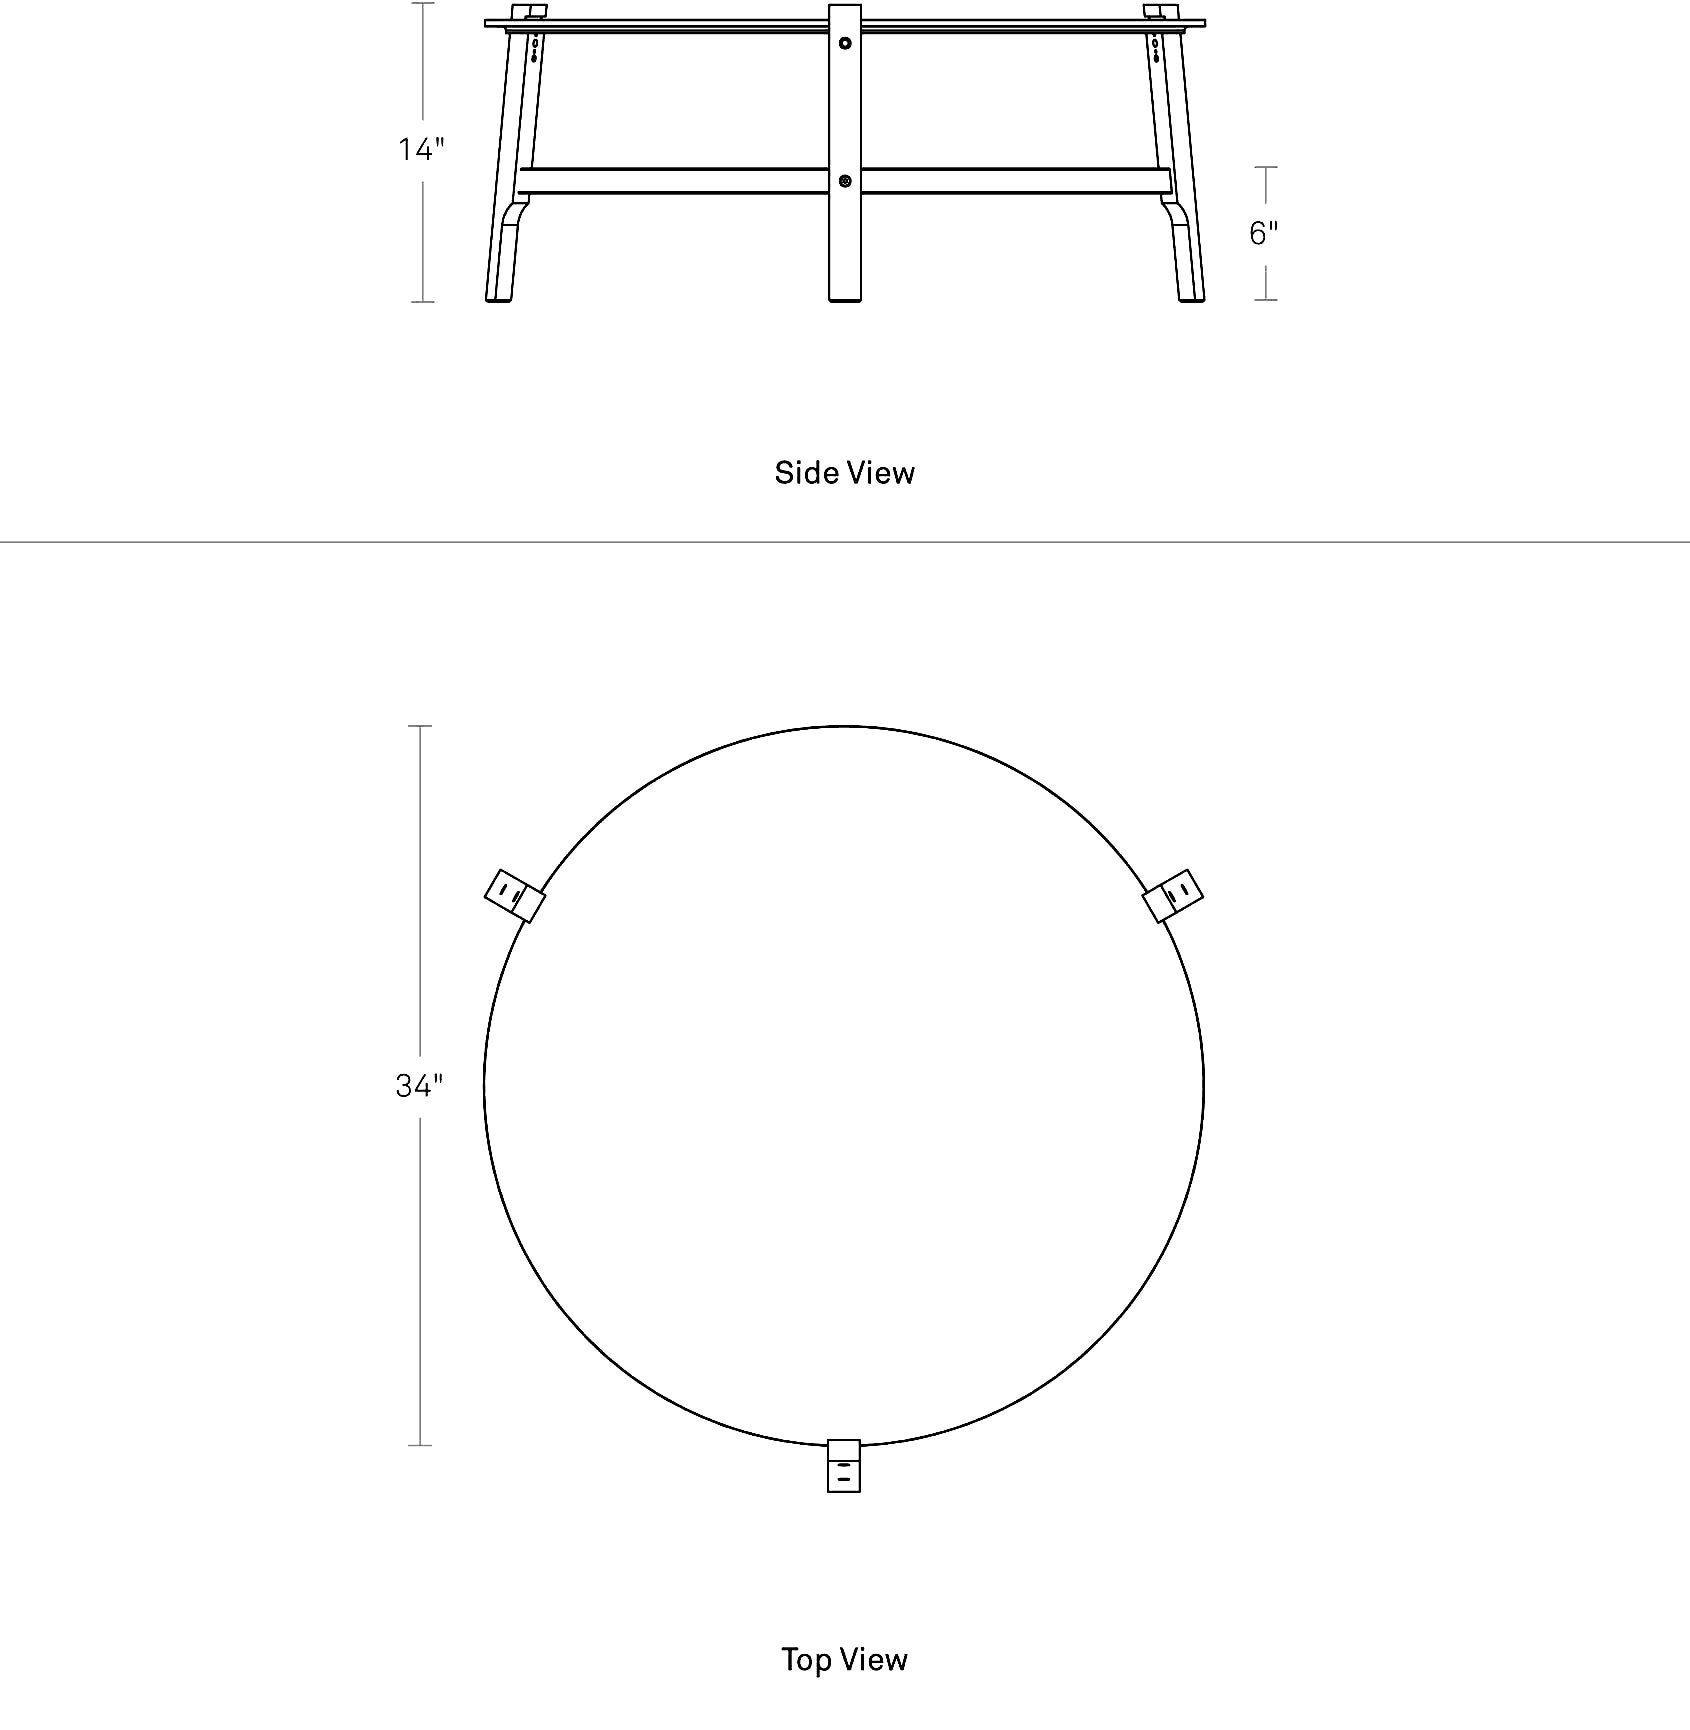 Standard Size Of Round Coffee Table: Free Range Coffee Table - Round Marble Coffee Table